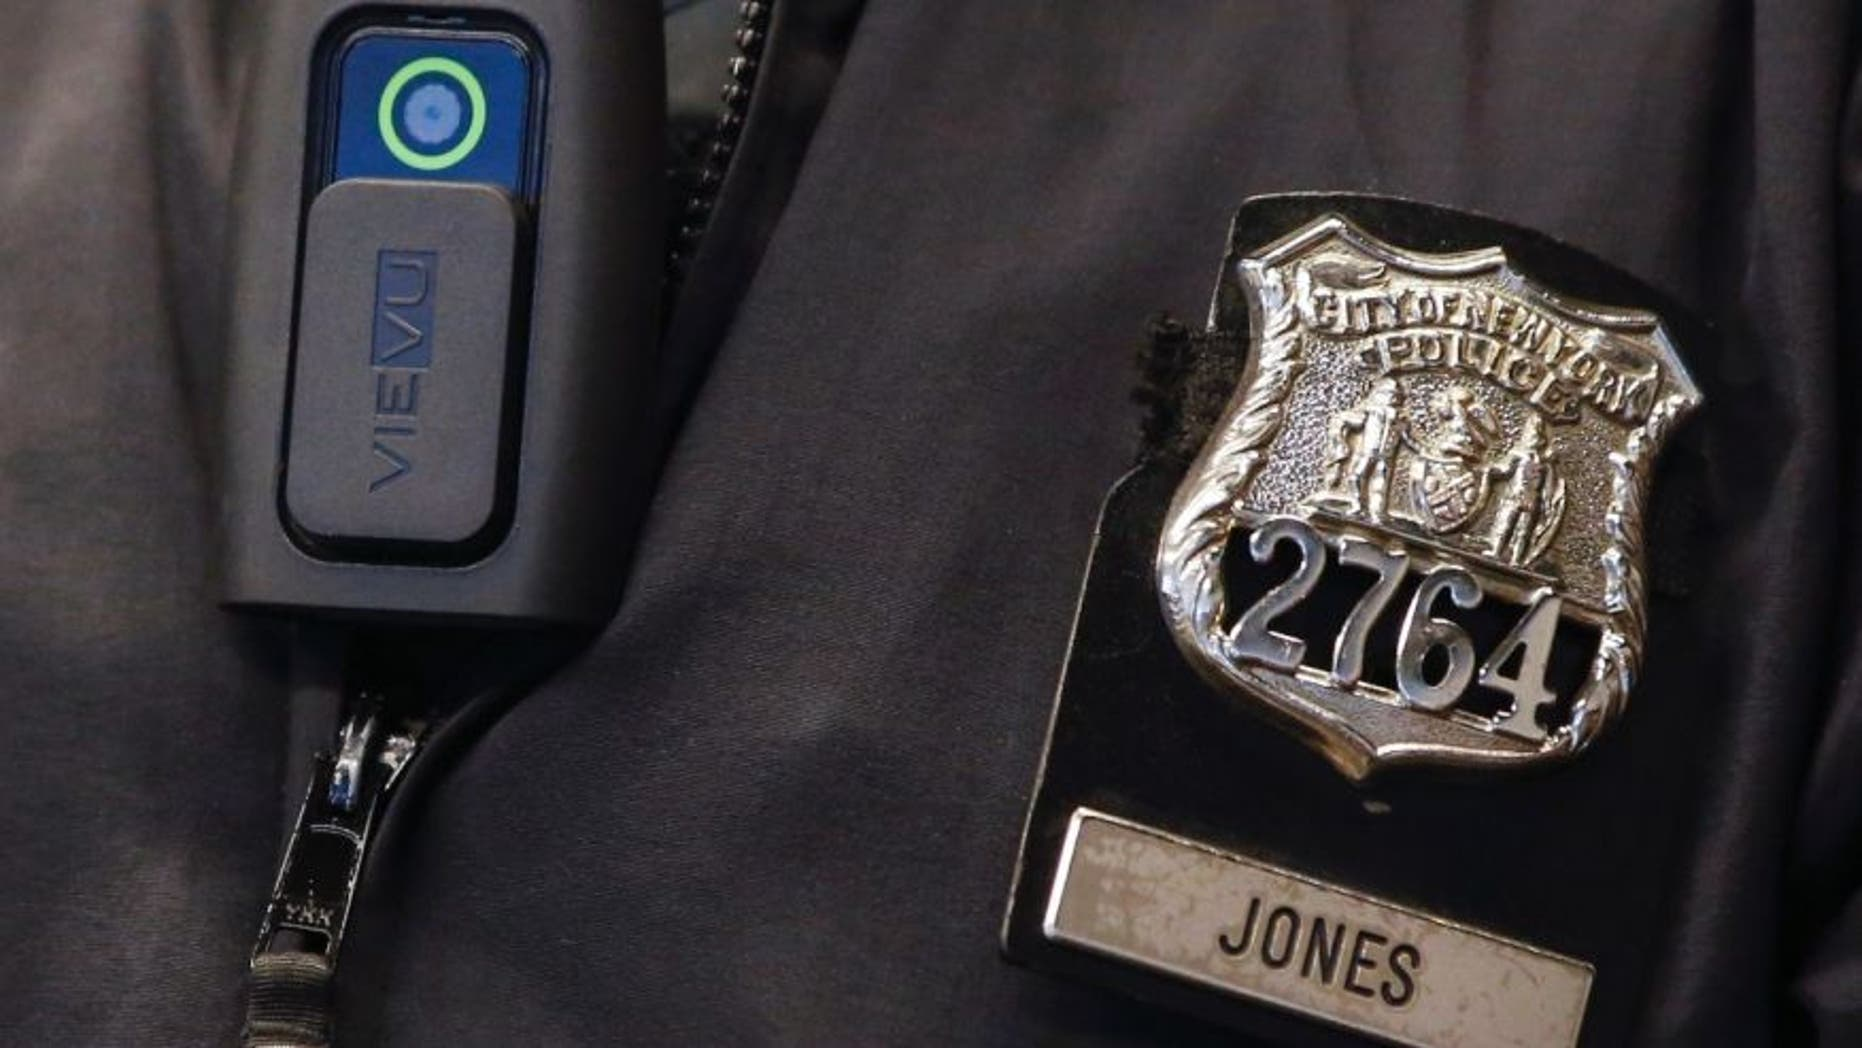 Dec. 3, 2014: A police body camera is seen on an officer during a news conference.